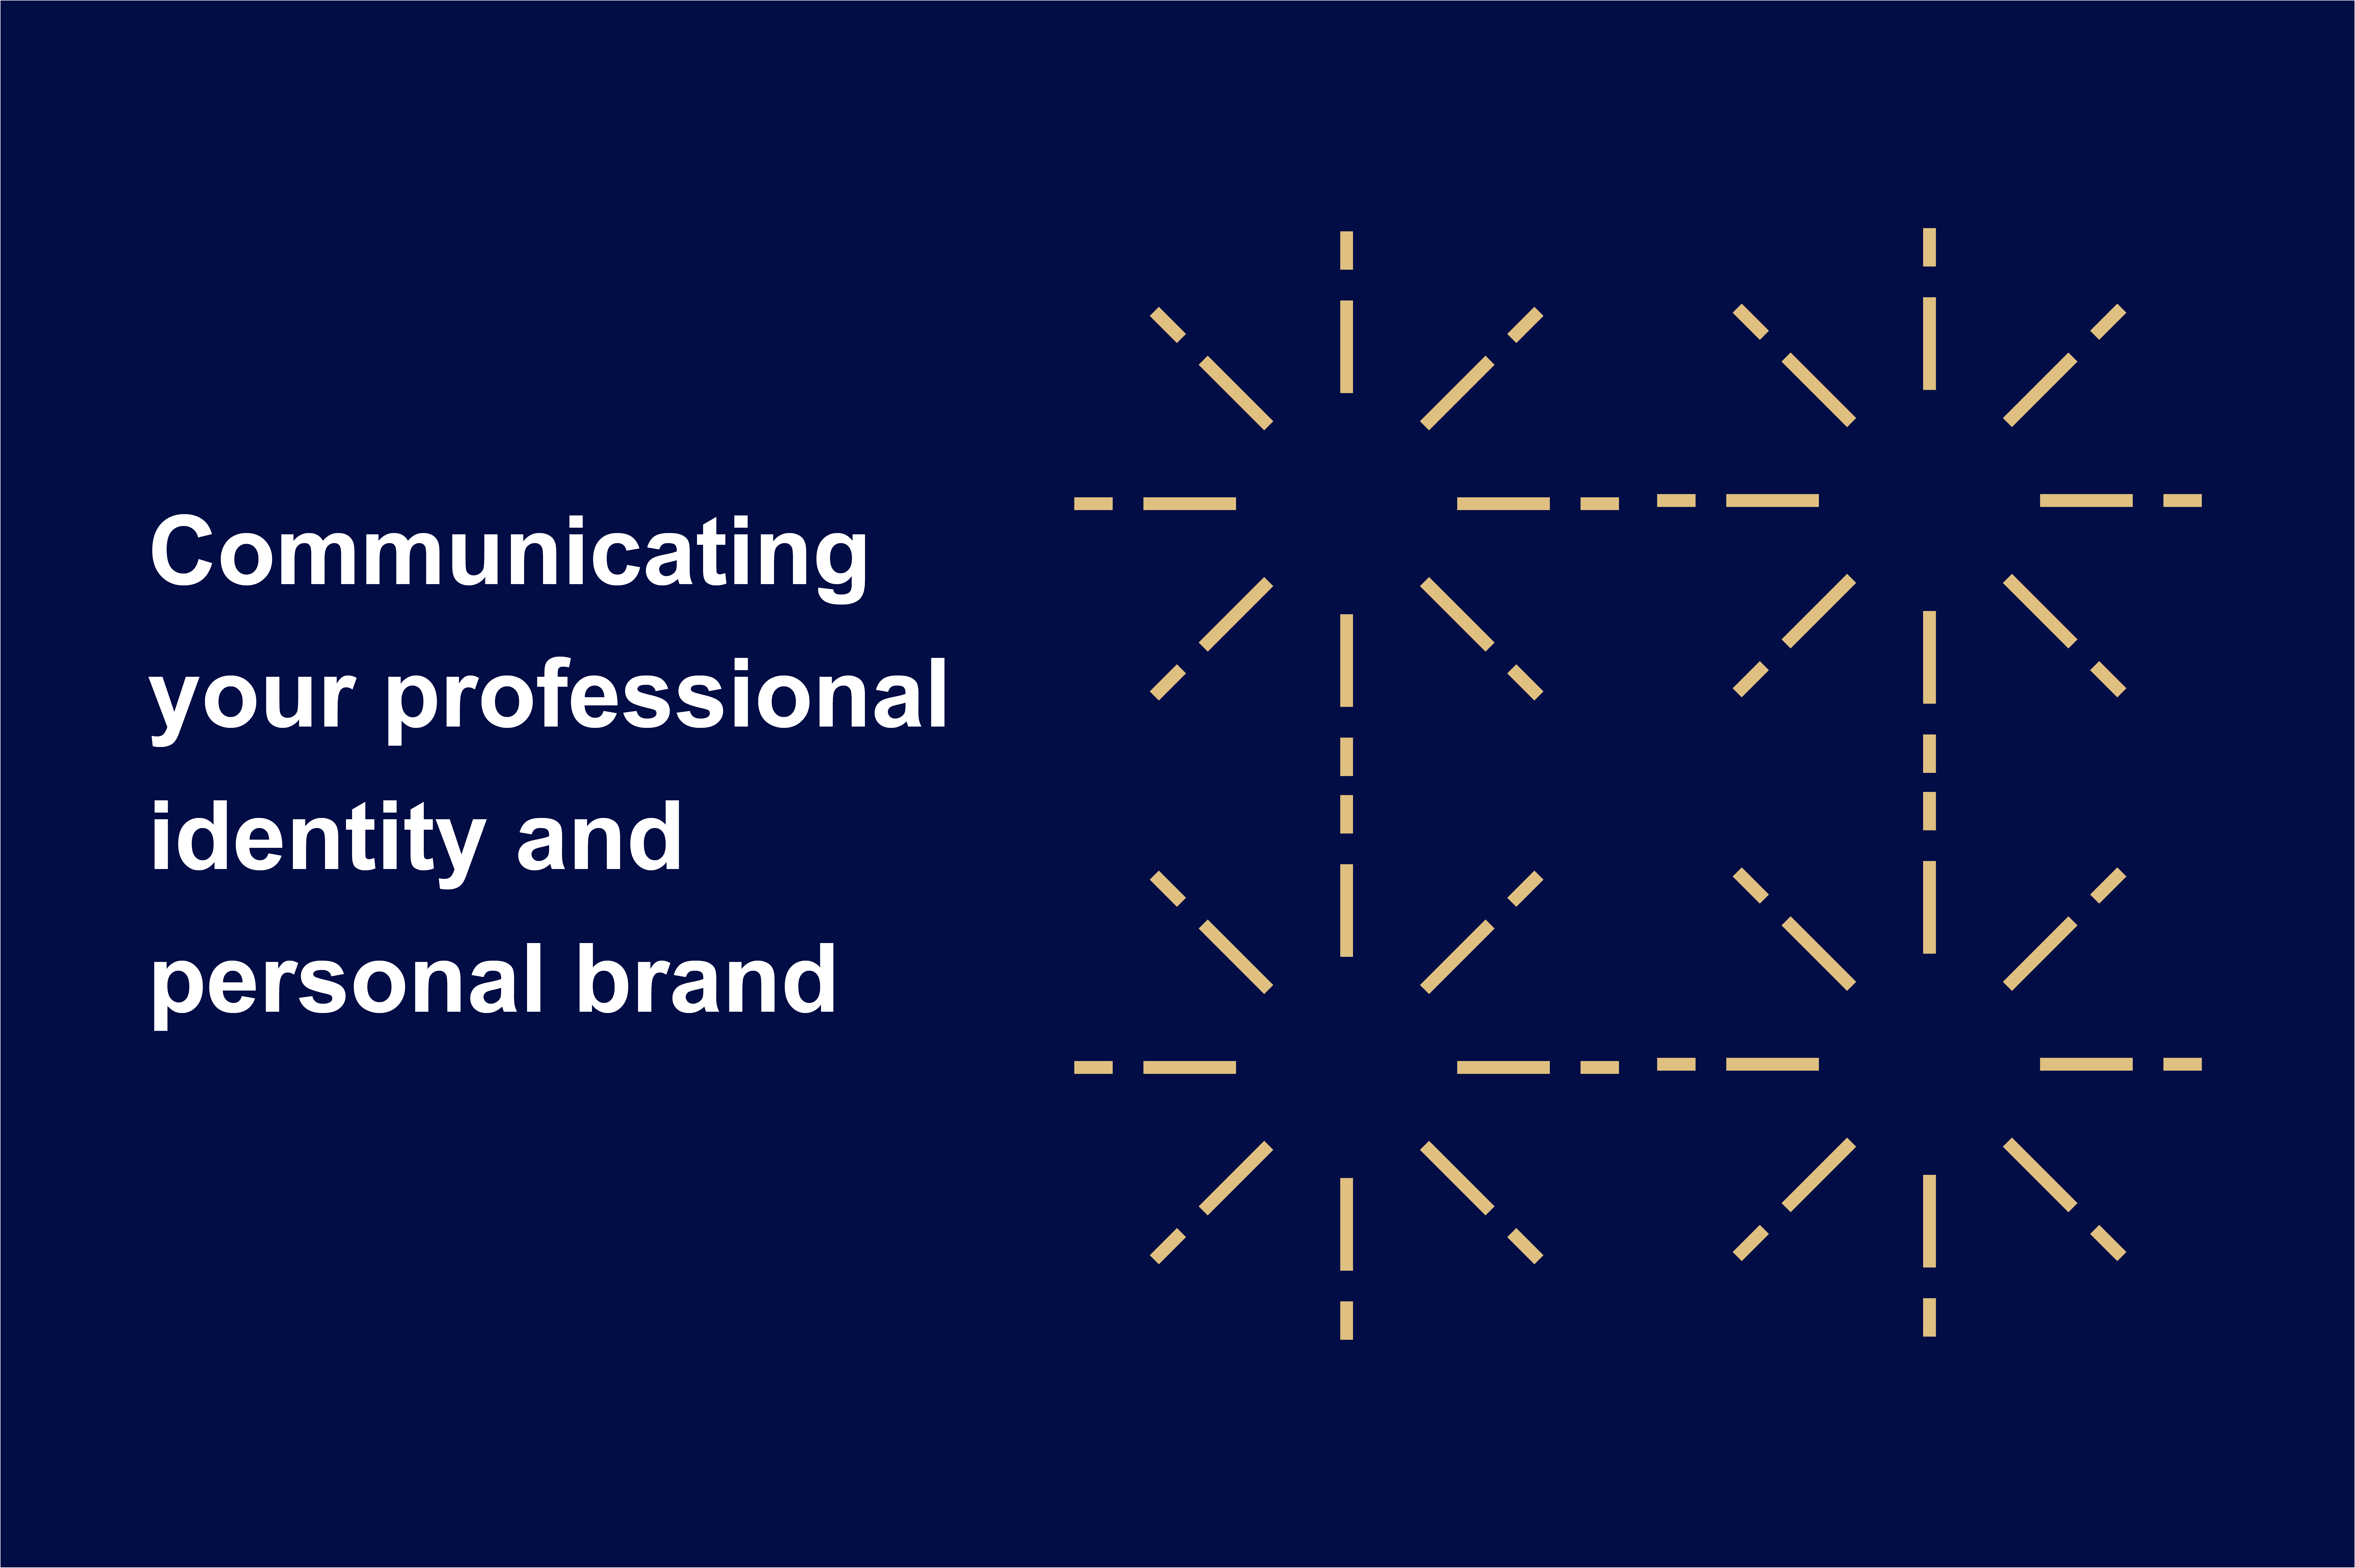 communicating your professional identify and personal brand